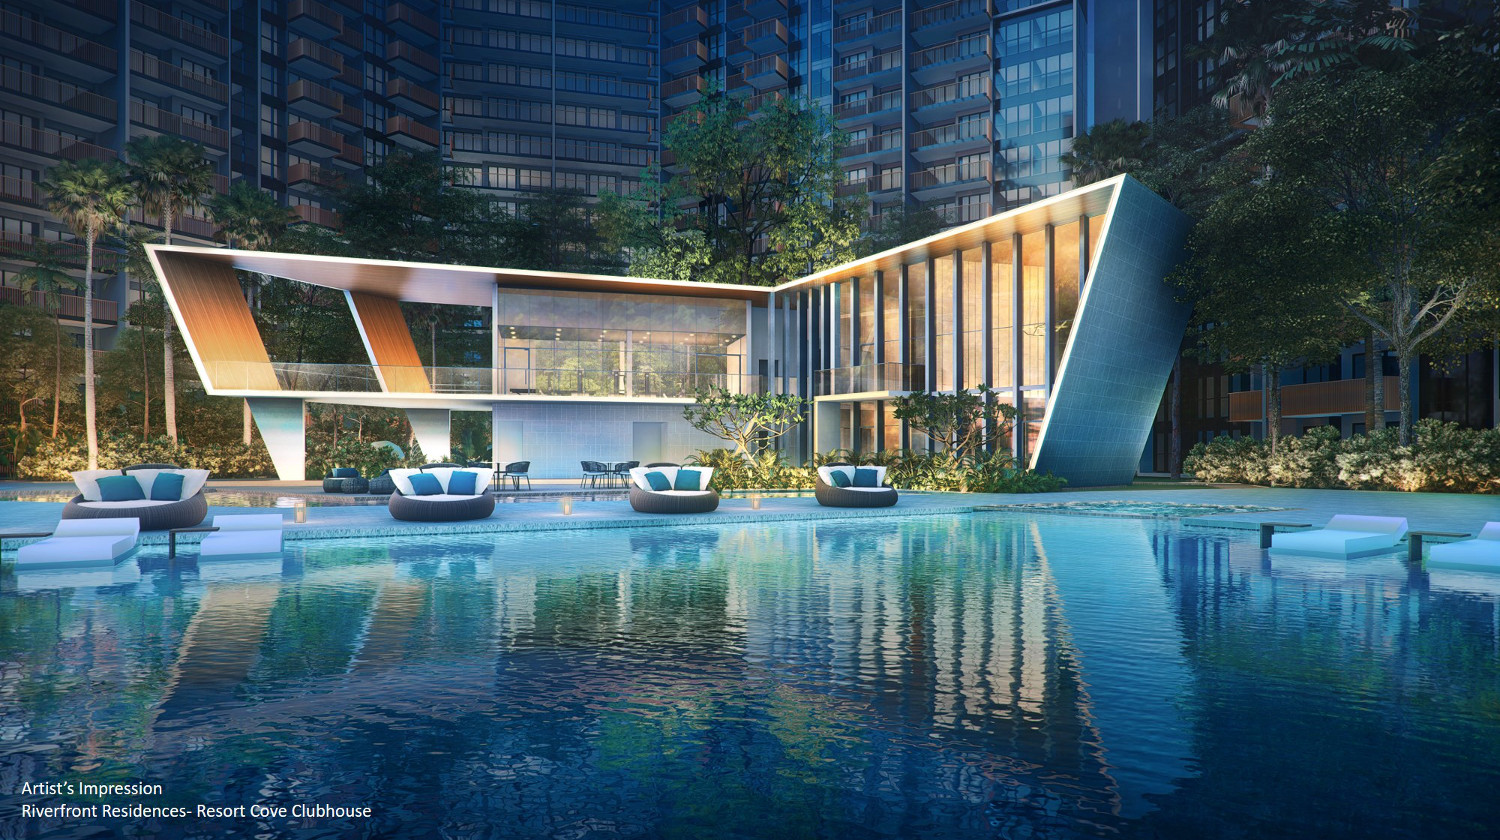 Riverfront Residences by Oxley